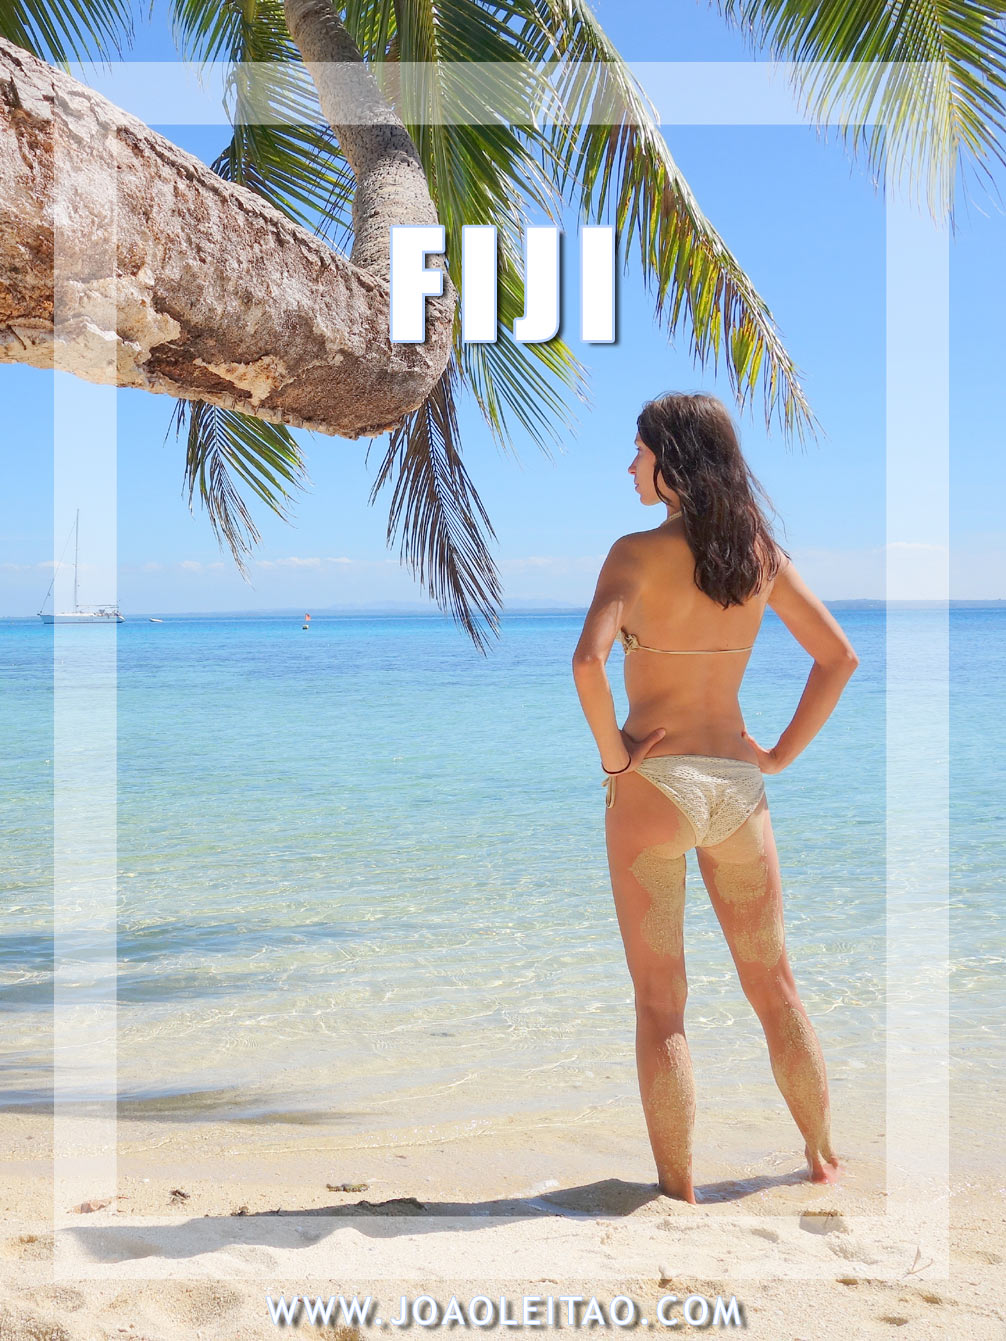 43 Reasons why you should visit Visit Fiji Islands